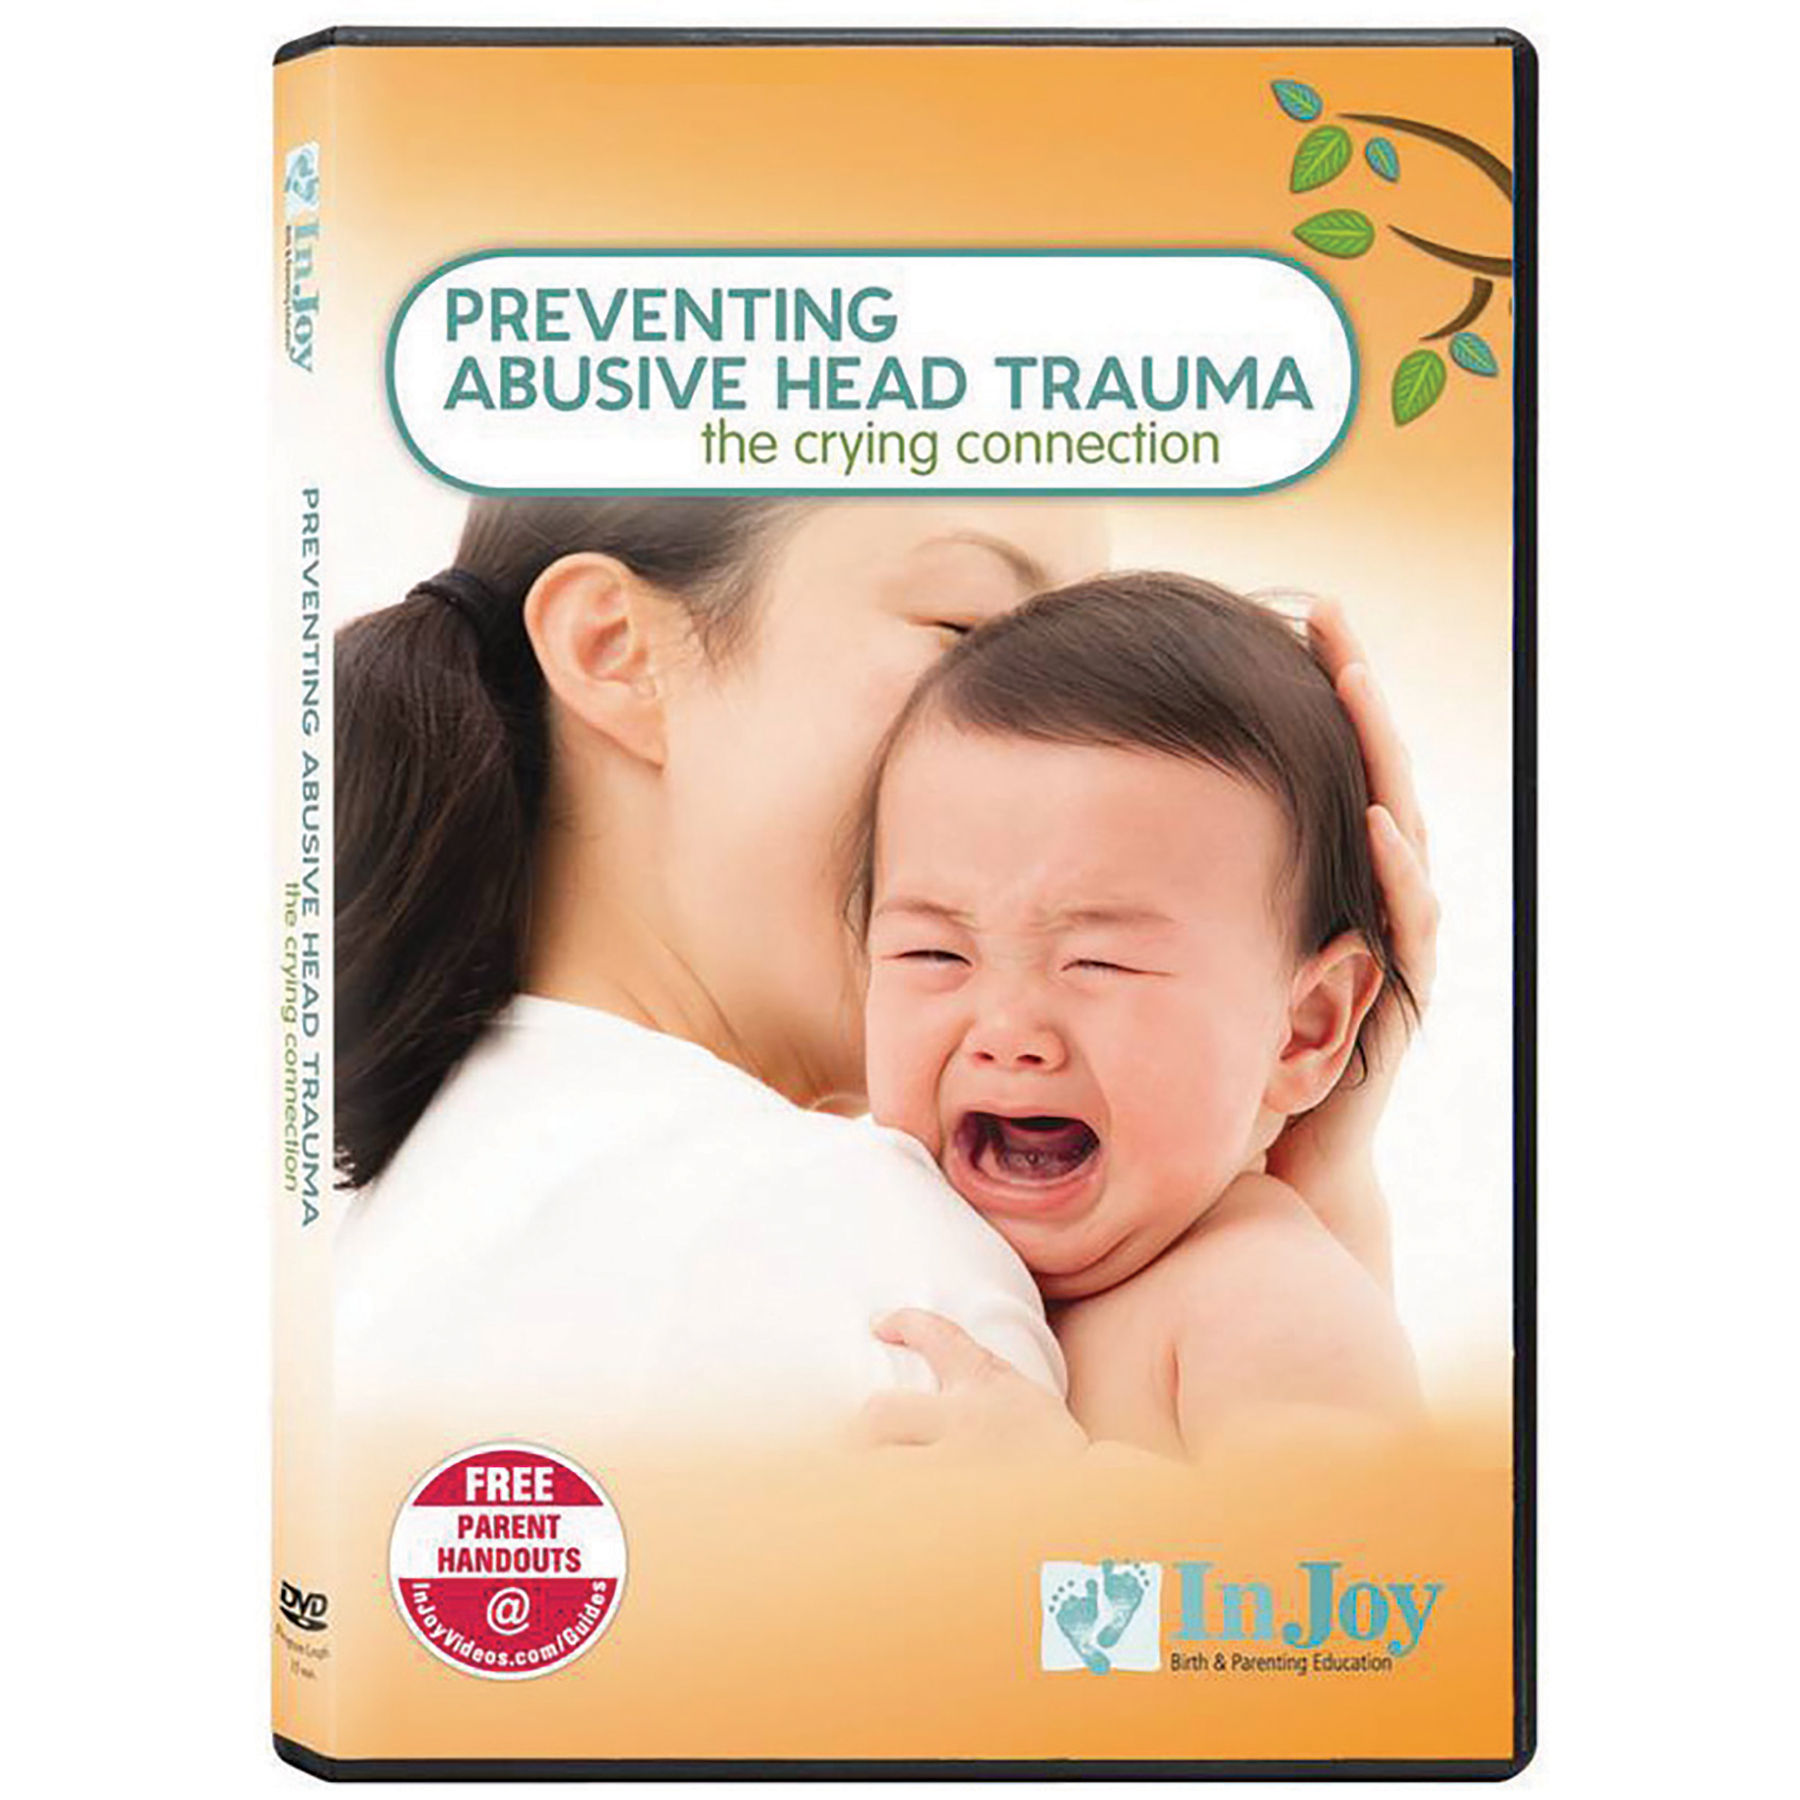 Preventing Abusive Head Trauma DVD, parenting , mom holding crying baby image, Childbirth Graphics, 48778